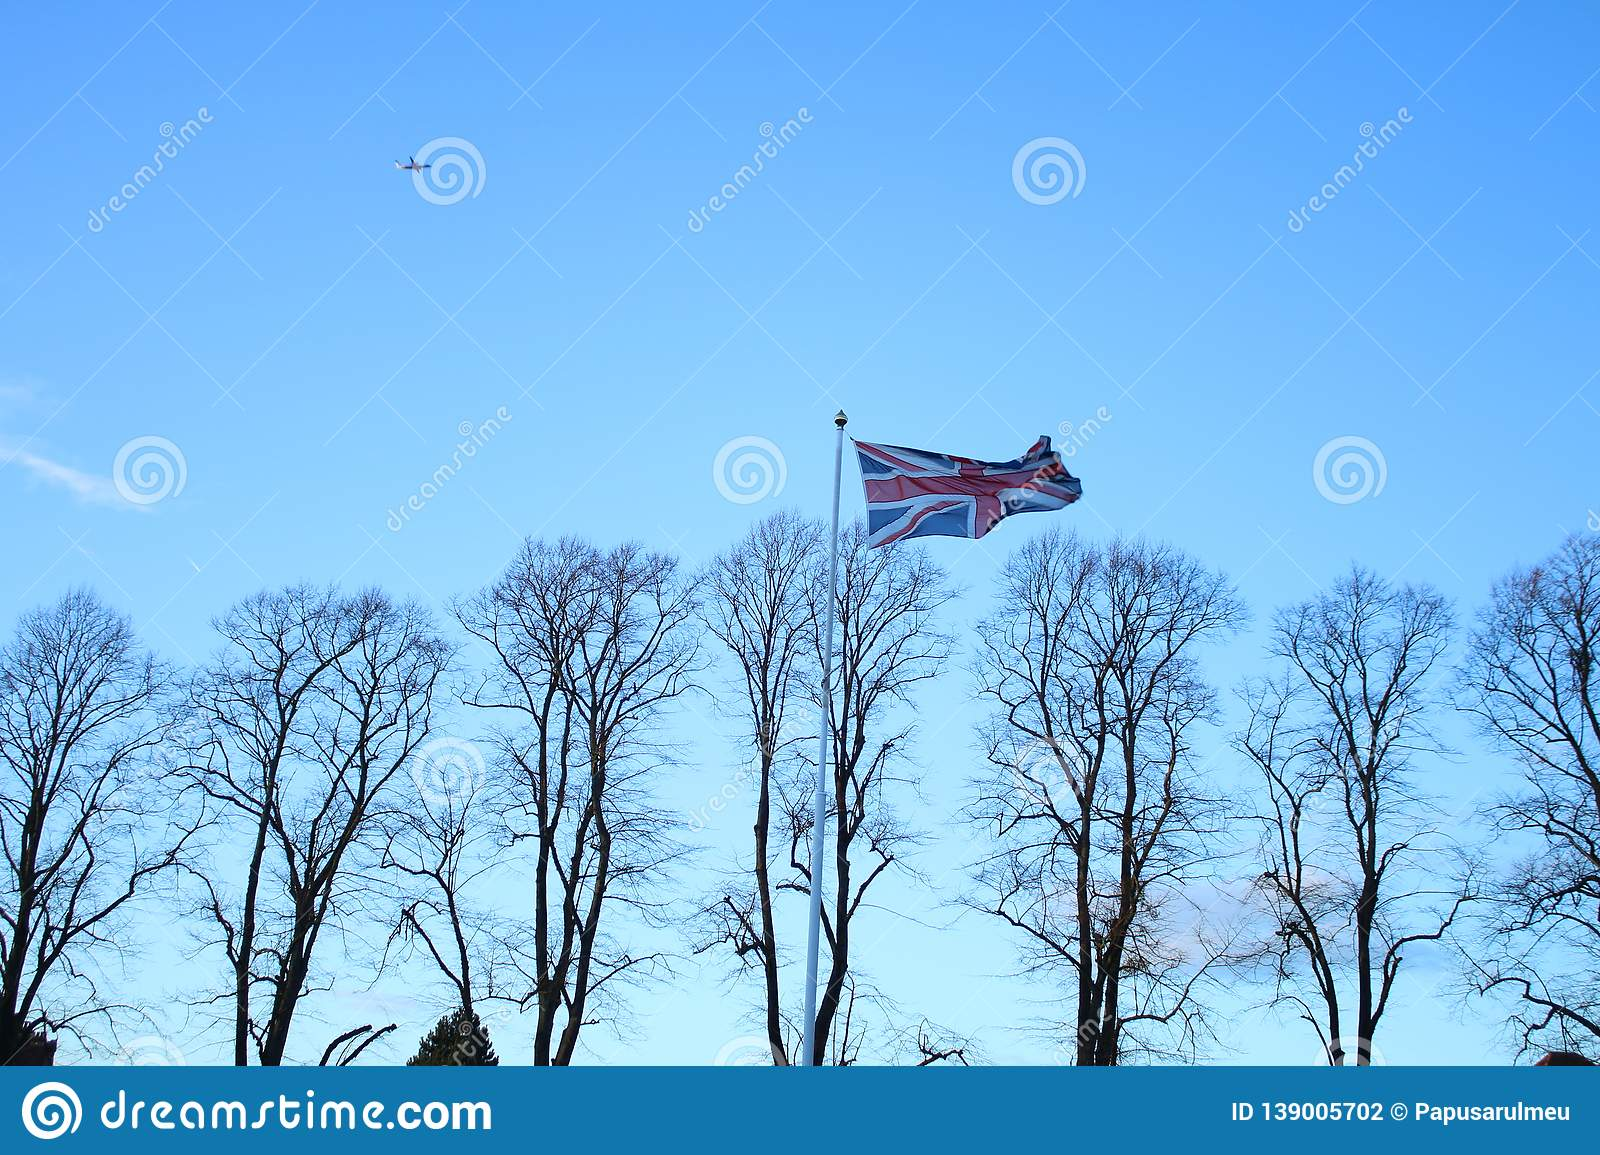 Great Britain`s flag fluttering in the wind. Wallpaper with clear blue sky